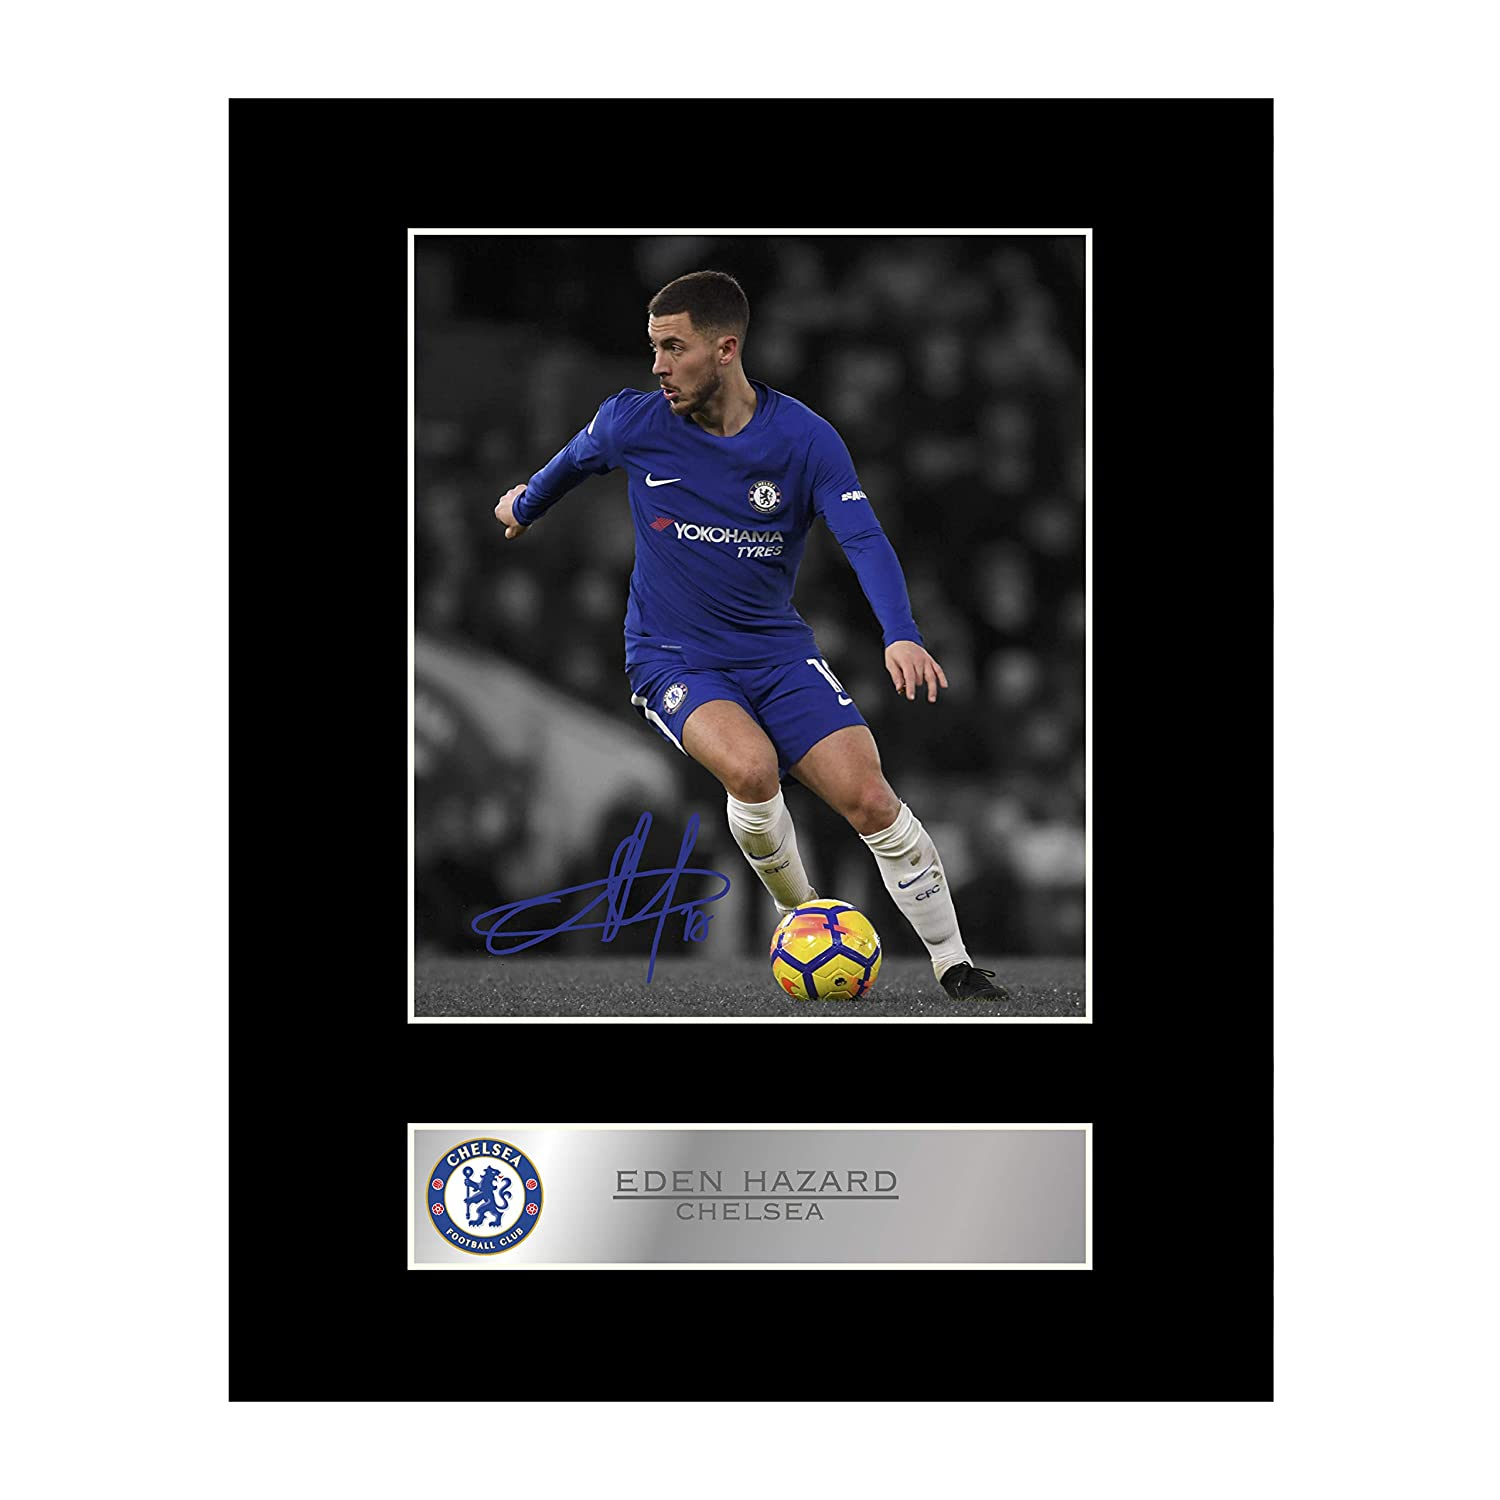 Eden Hazard Signed Mounted Photo Display Chelsea FC #1 Autographed Gift Picture Print Iconic pics